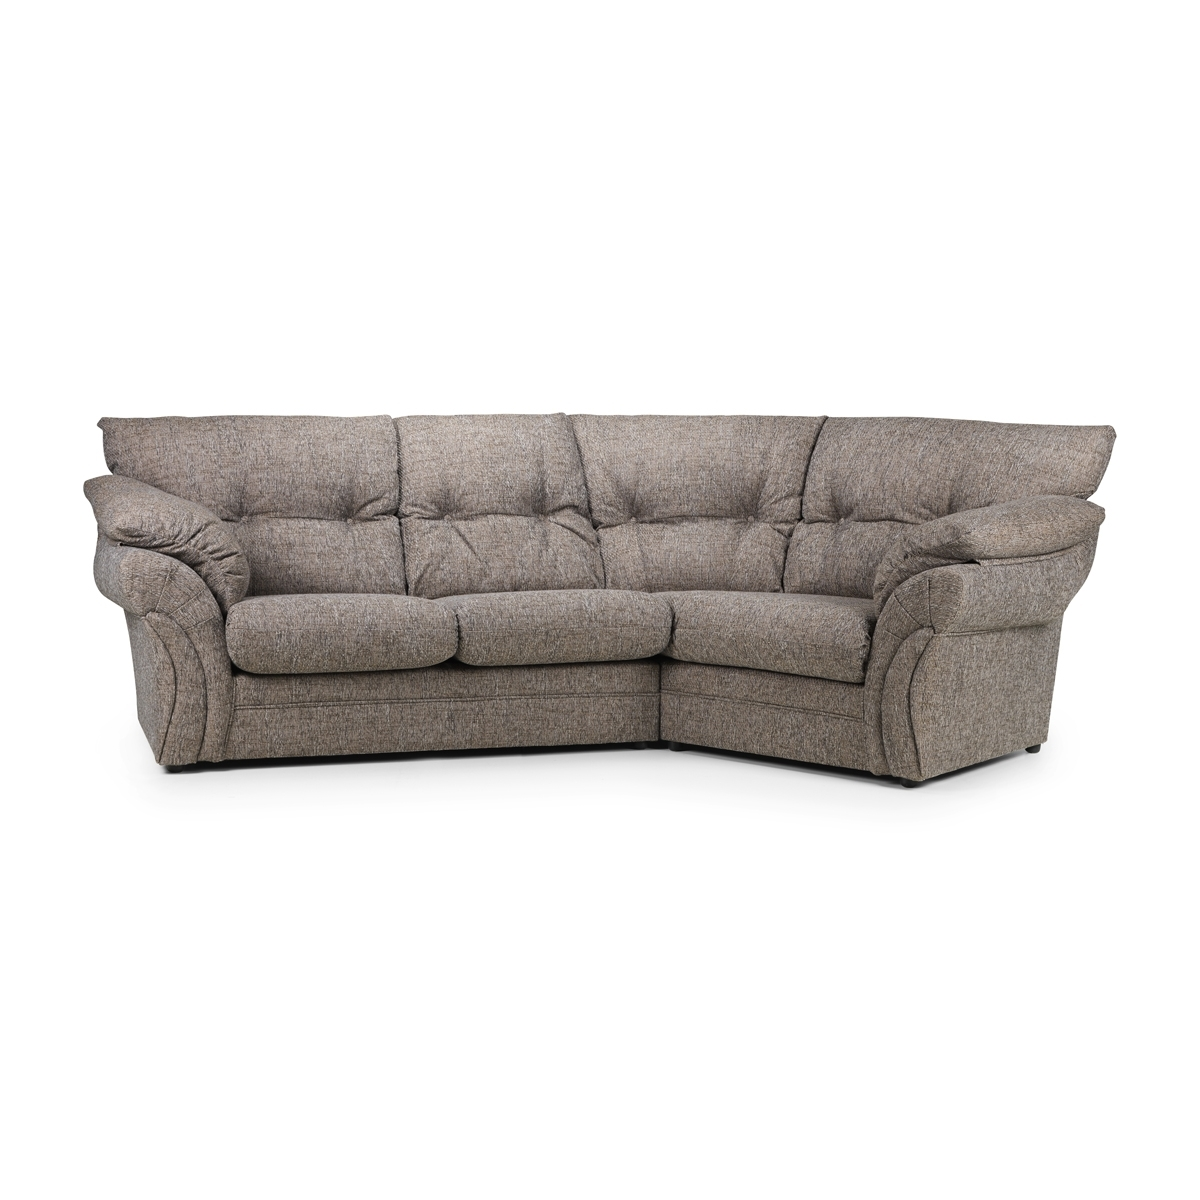 Recent Snuggle Sofas Within Fl Series – Snuggle Sofa Lh Only £999 At Sofa Success (View 15 of 20)